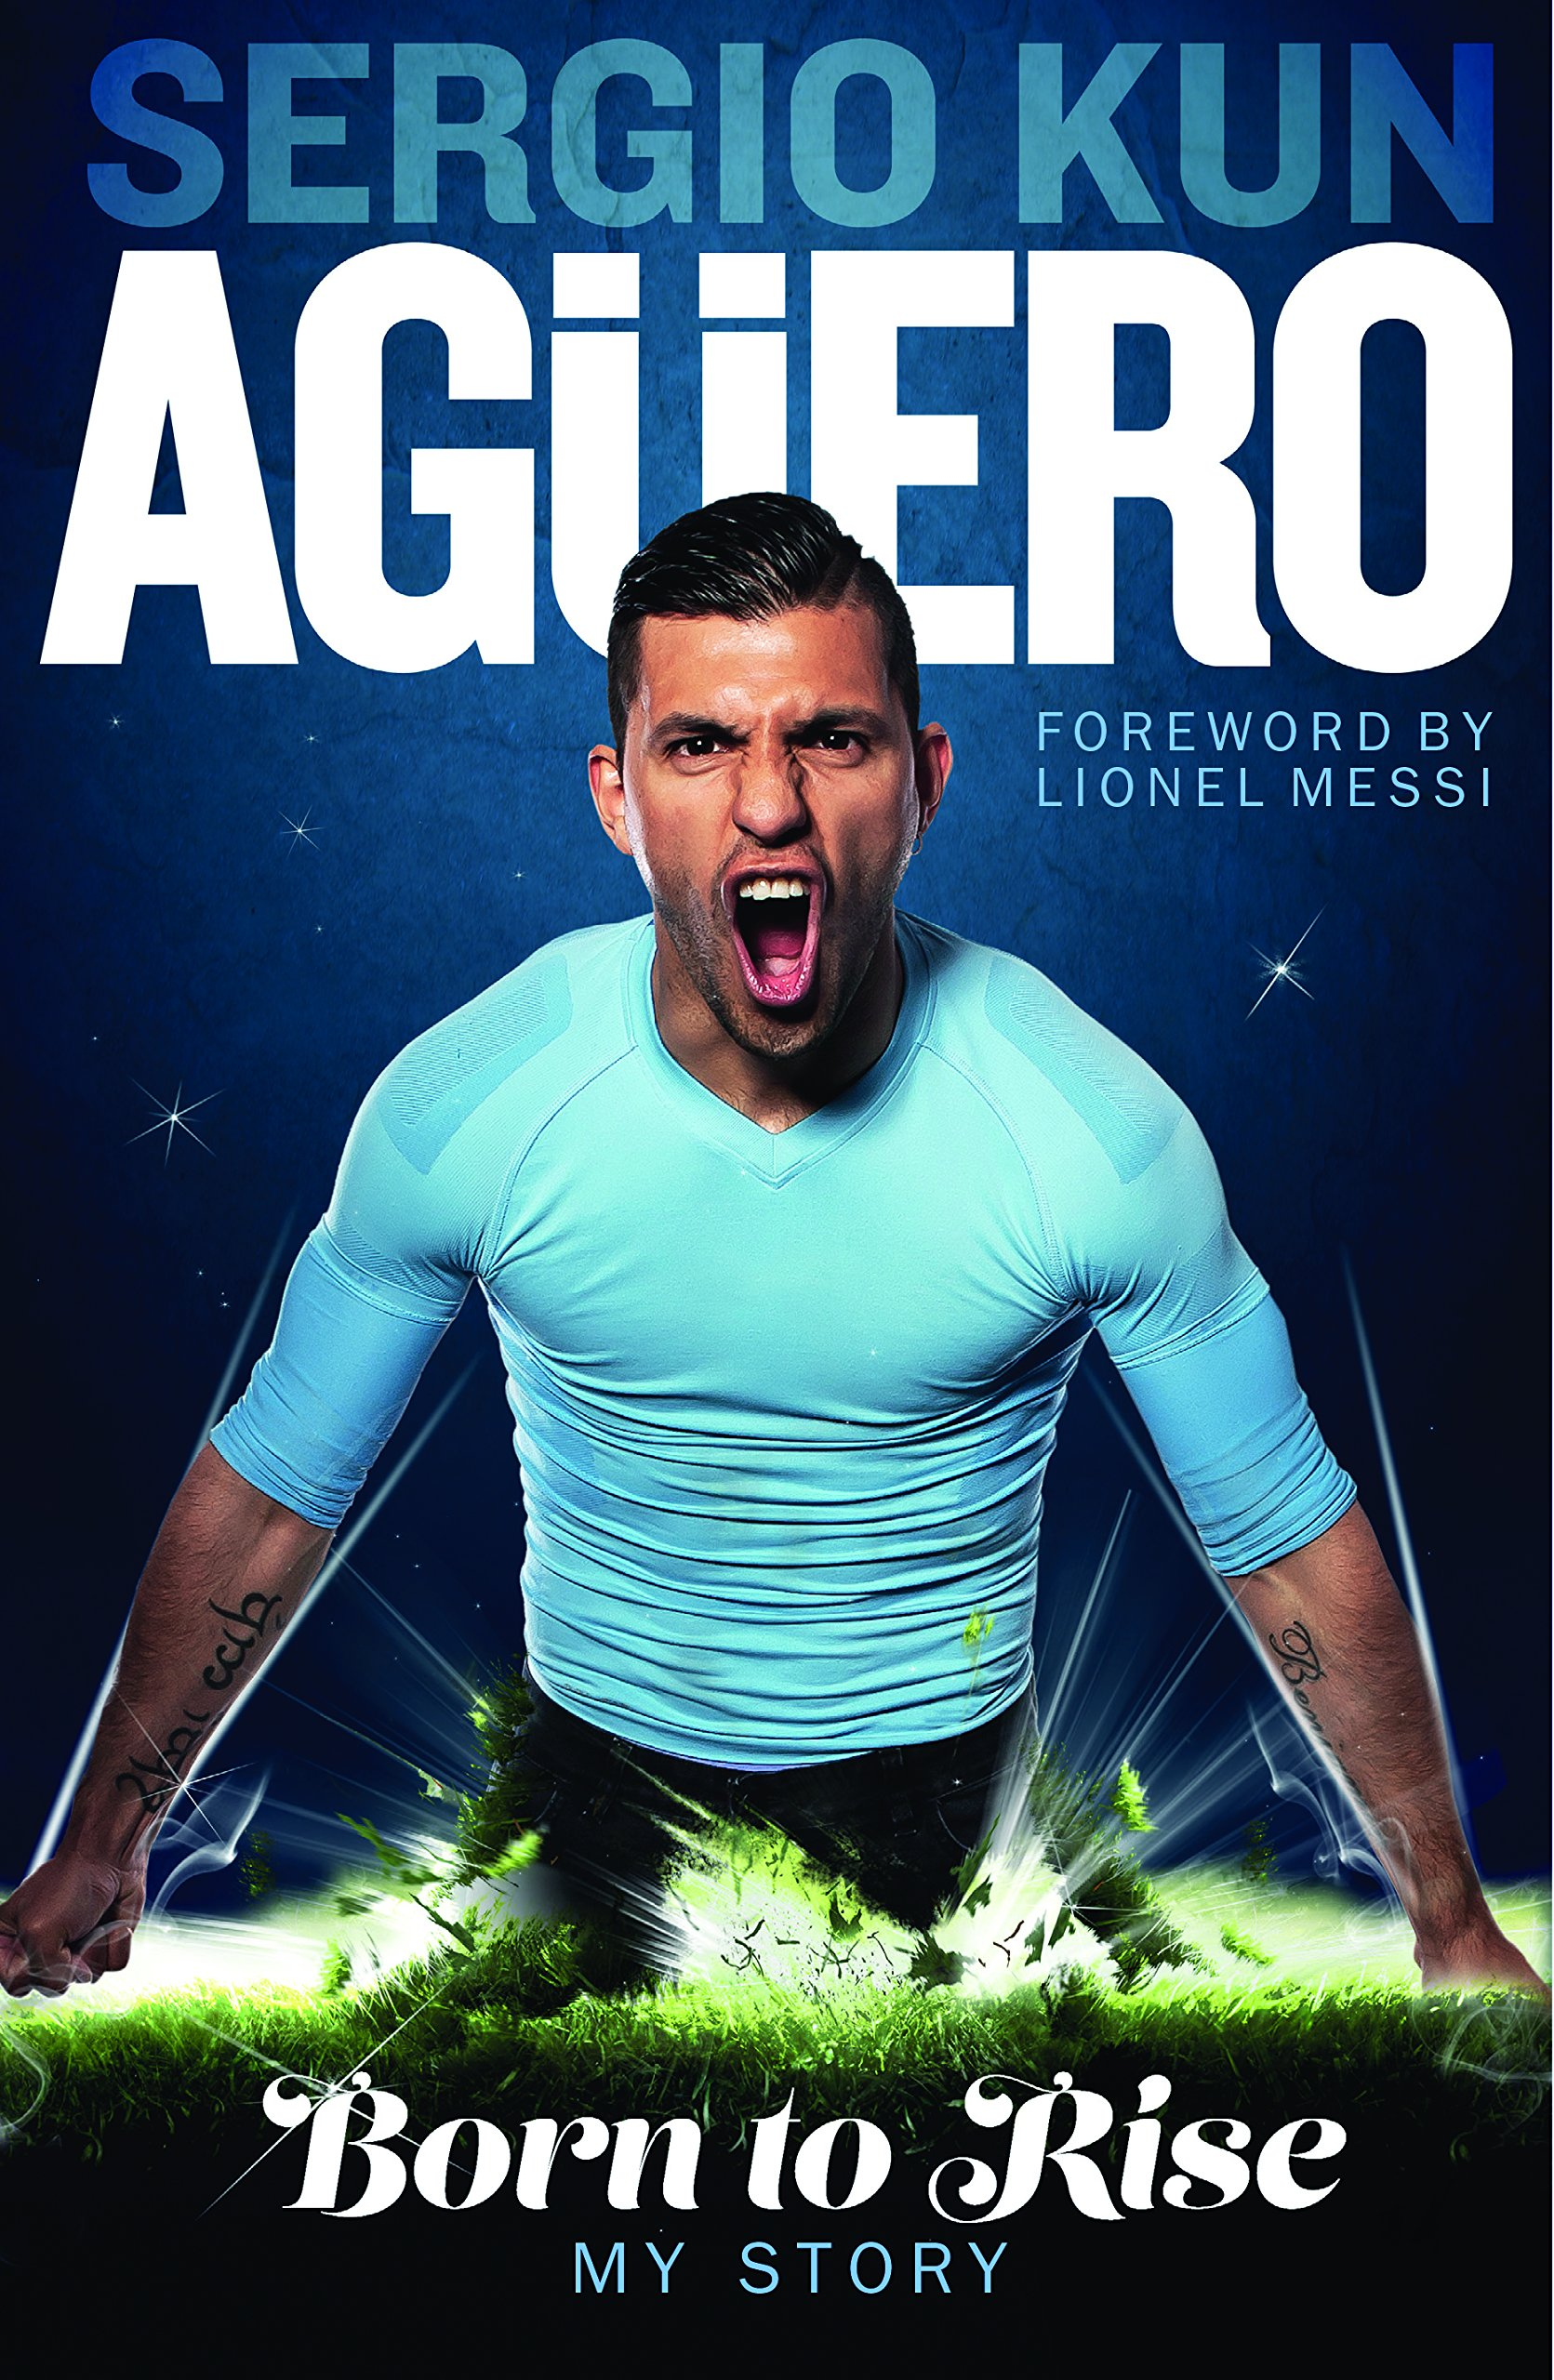 sergio aguero autobiography download